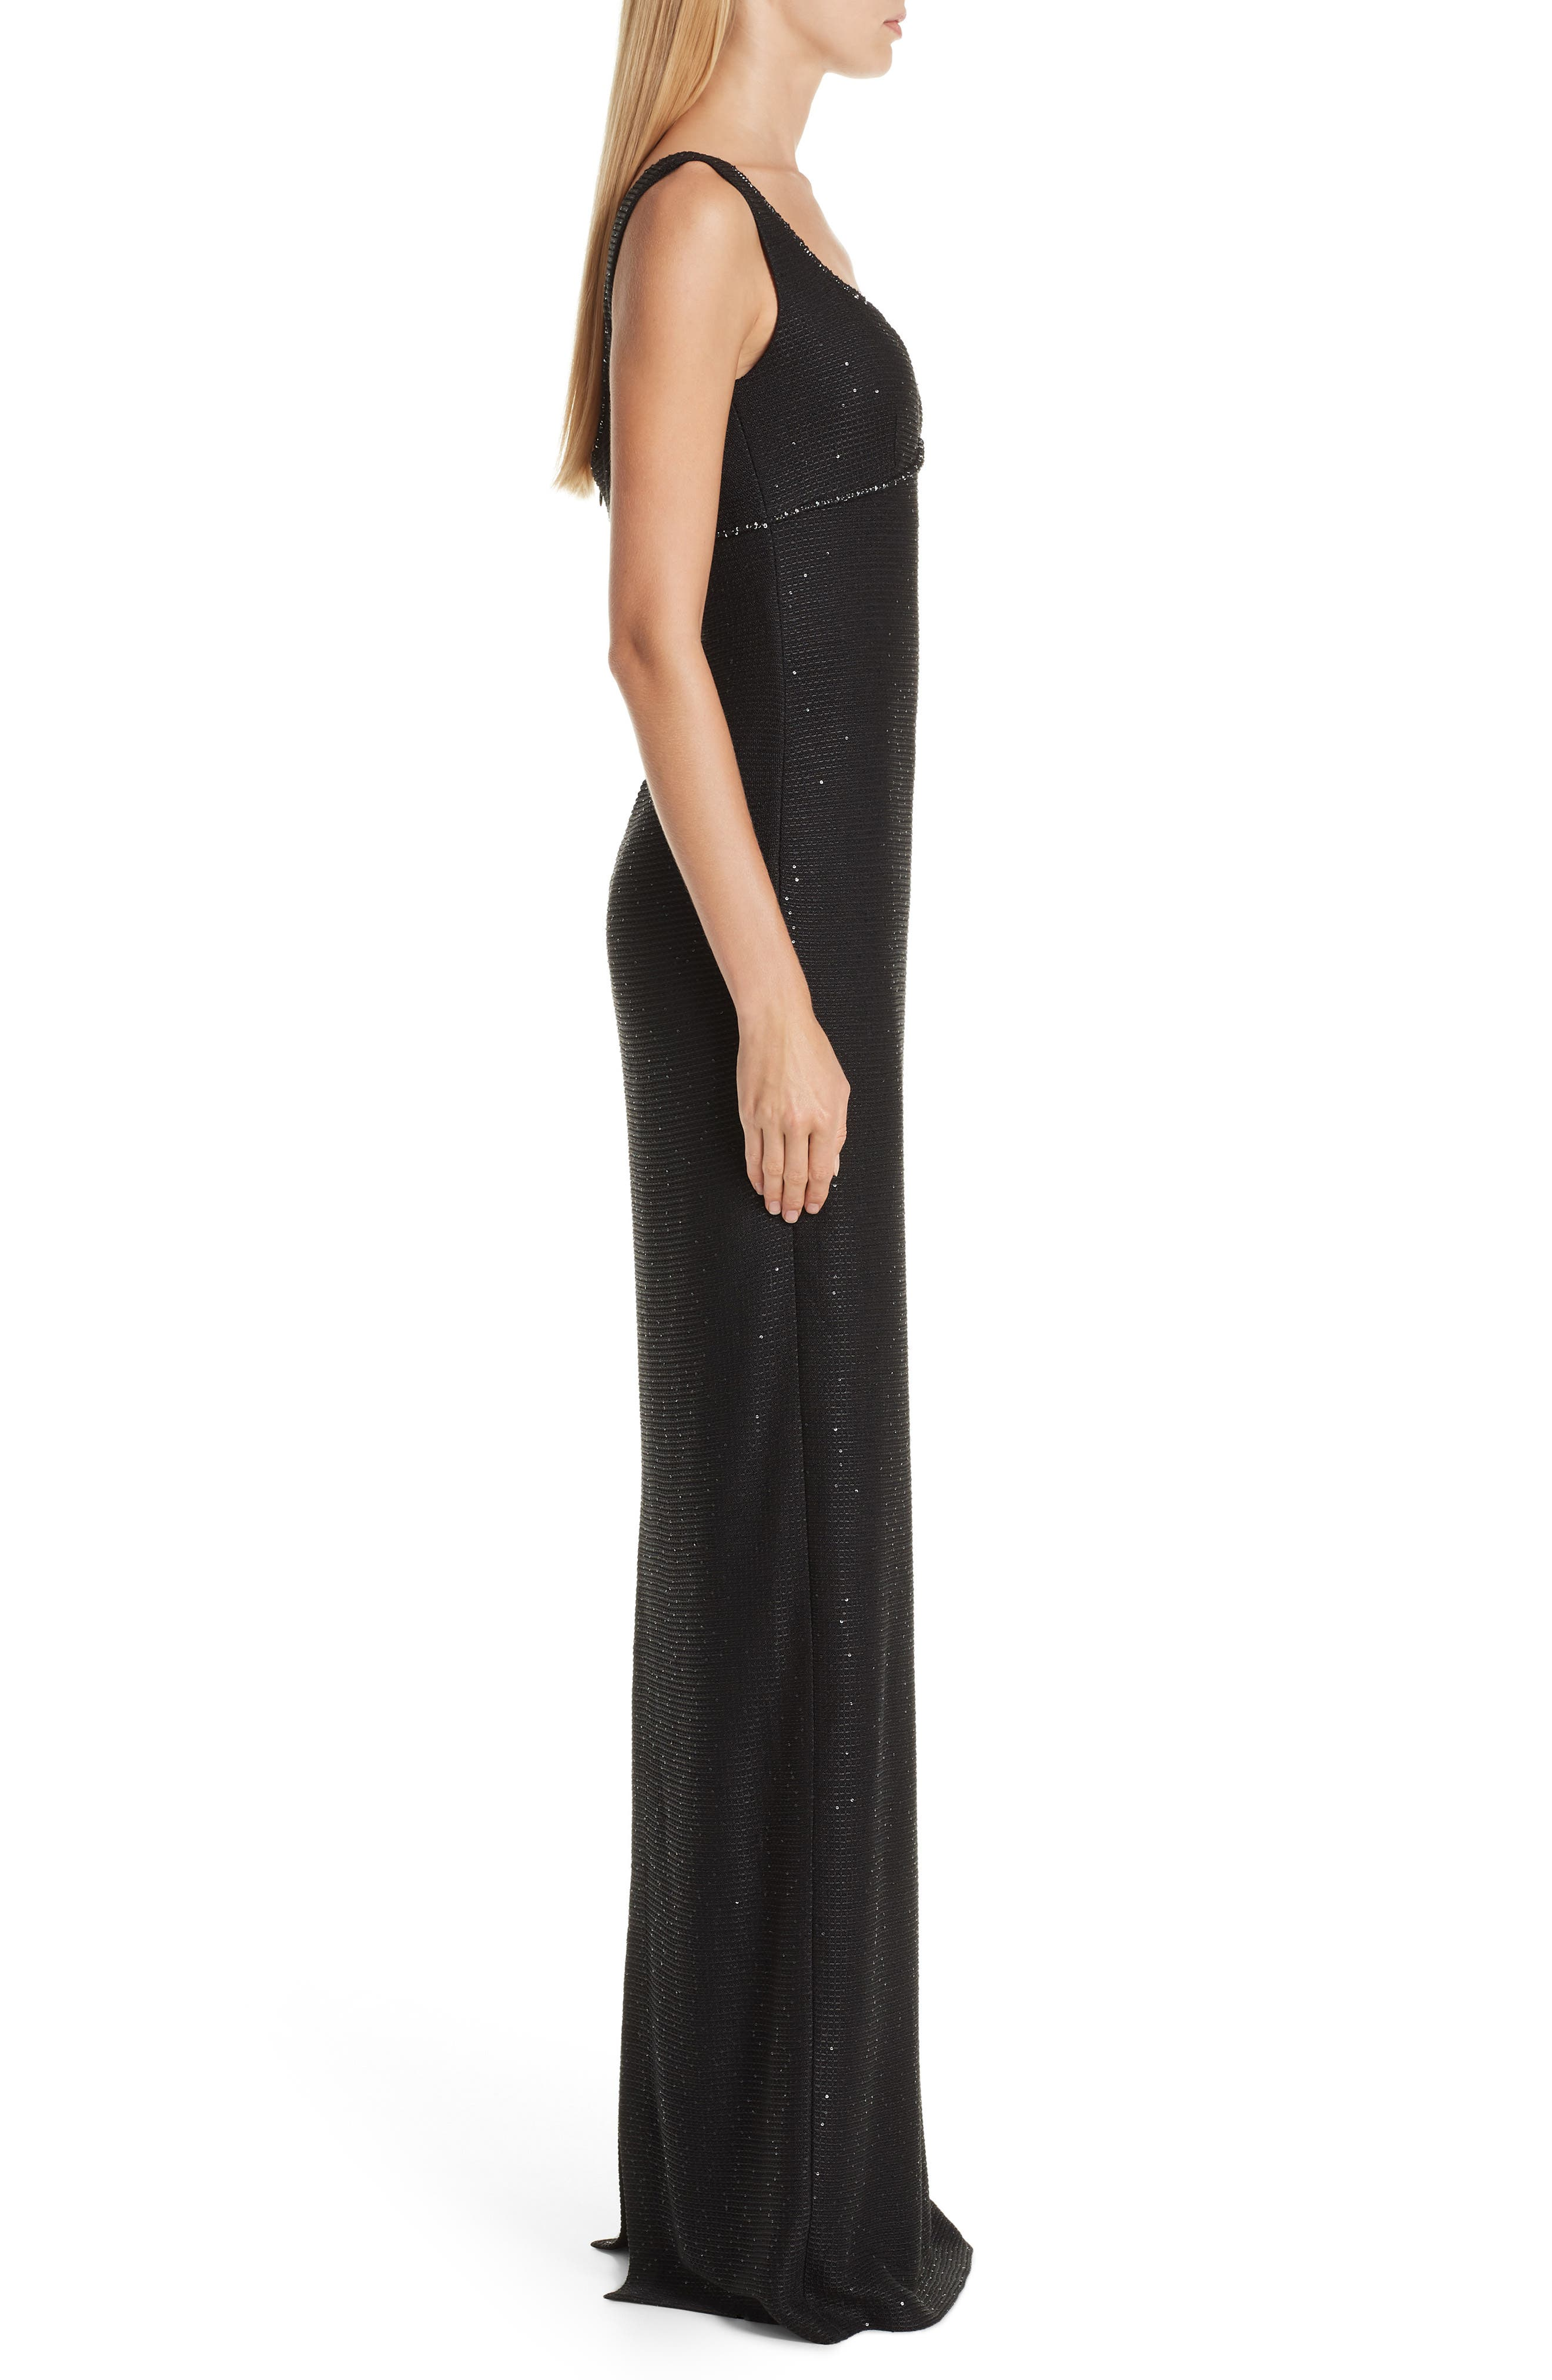 ST. JOHN COLLECTION, Links Sequin Knit Gown, Alternate thumbnail 3, color, CAVIAR